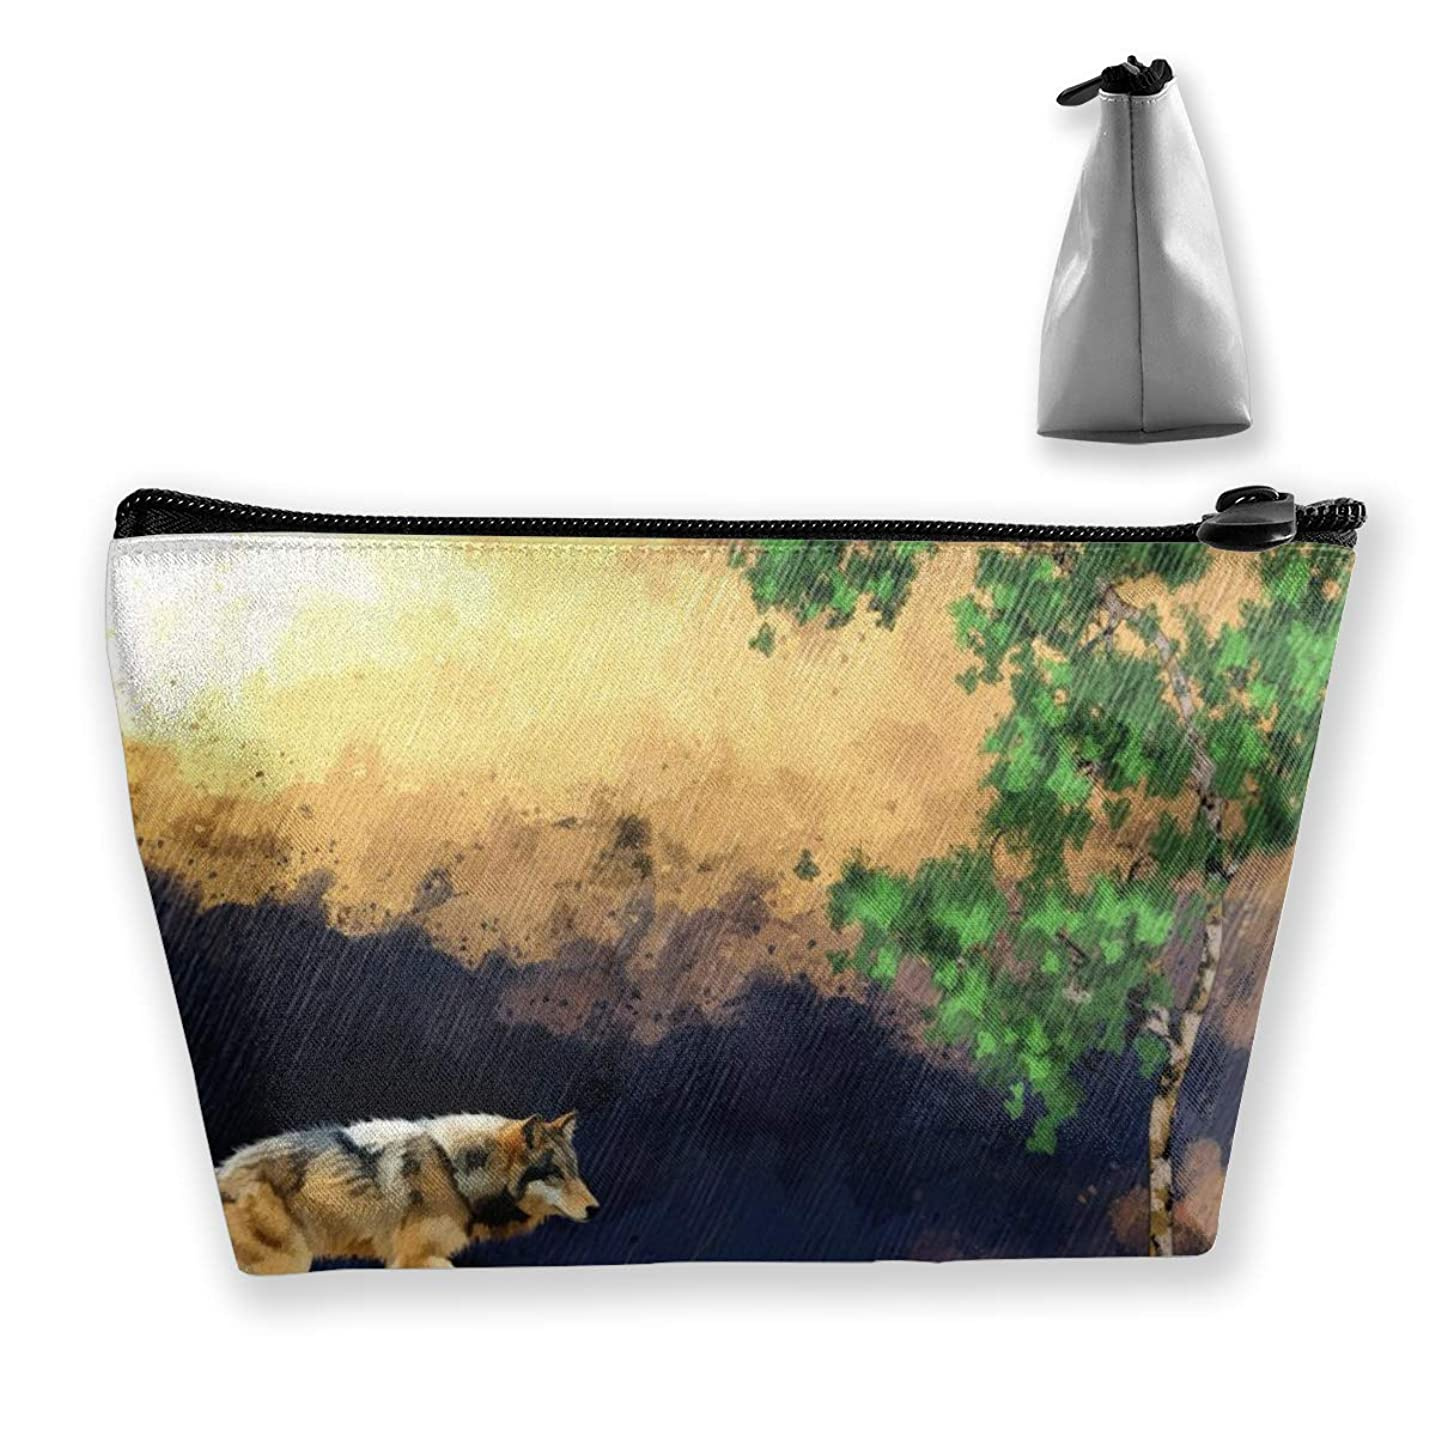 Tiffany N WhitneyRG Women's Travel Makeup Bag Abstract Art Painting Wolf Animal Cosmetic Pouch Multi-Functional Trapezoidal Storage Bag Toiletries Organizer Bag